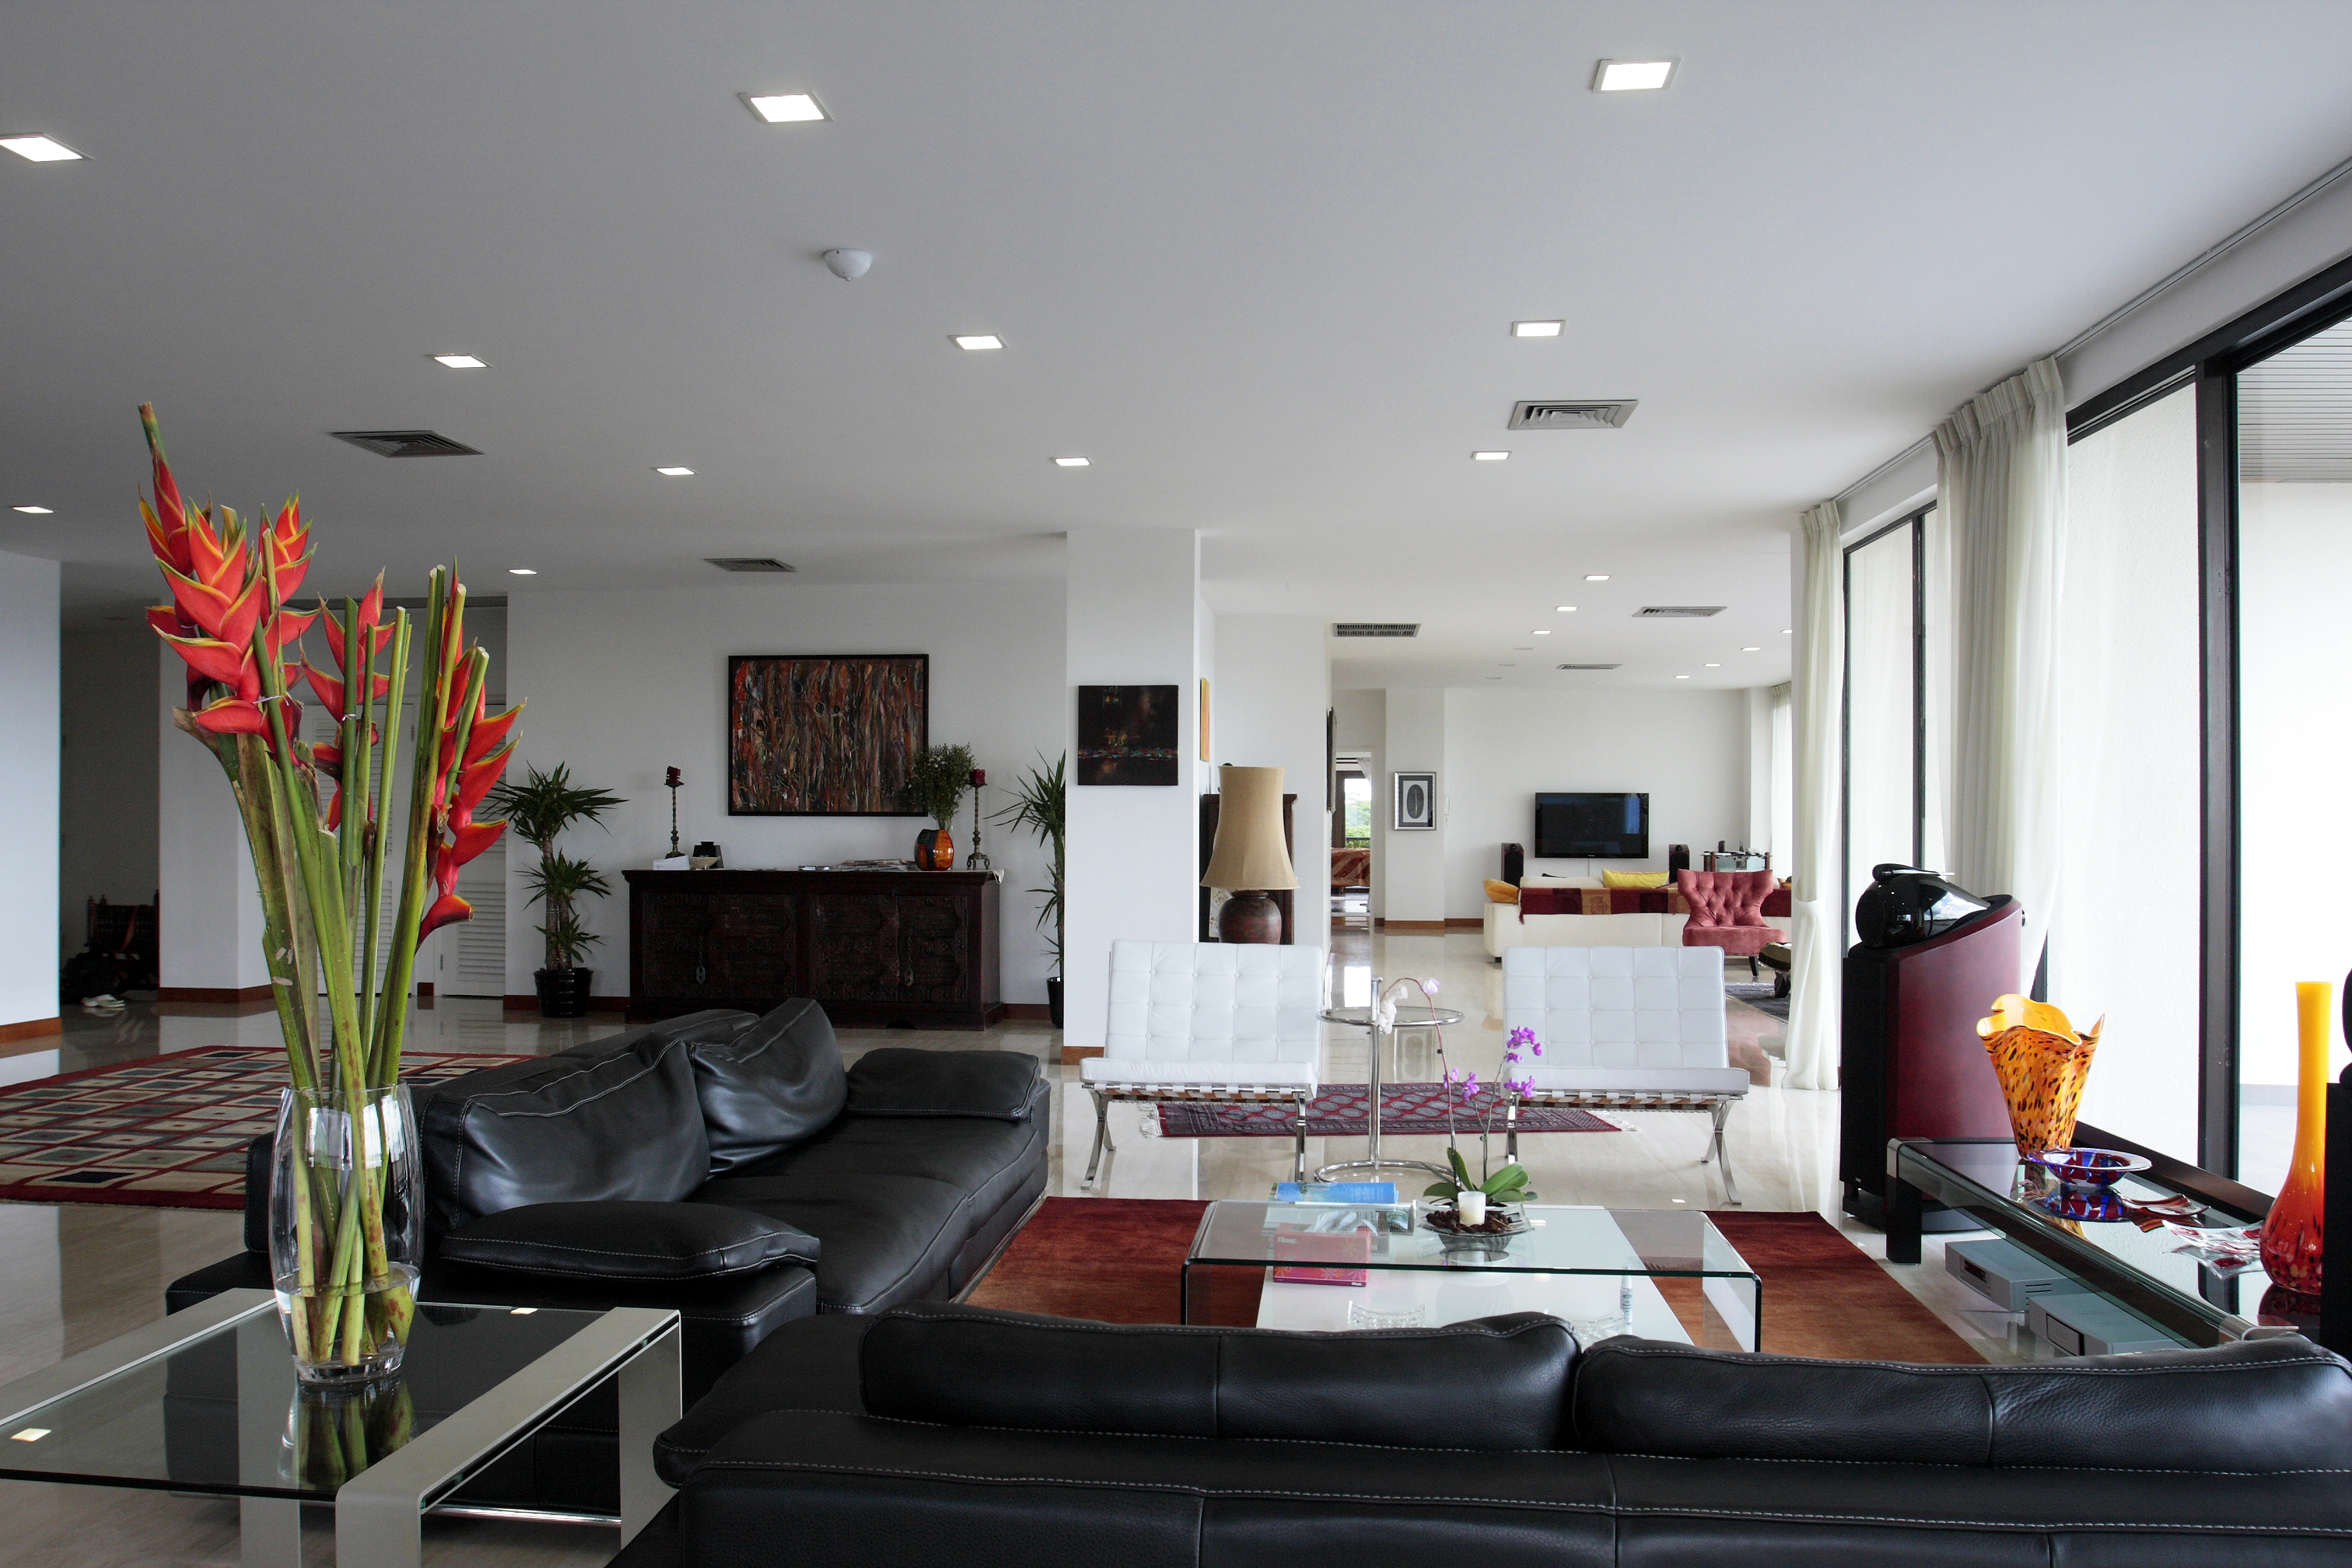 Currently, 4-bedroom units at The Arcadia are listed on EdgeProp.sg at a starting price of $3.48 million.